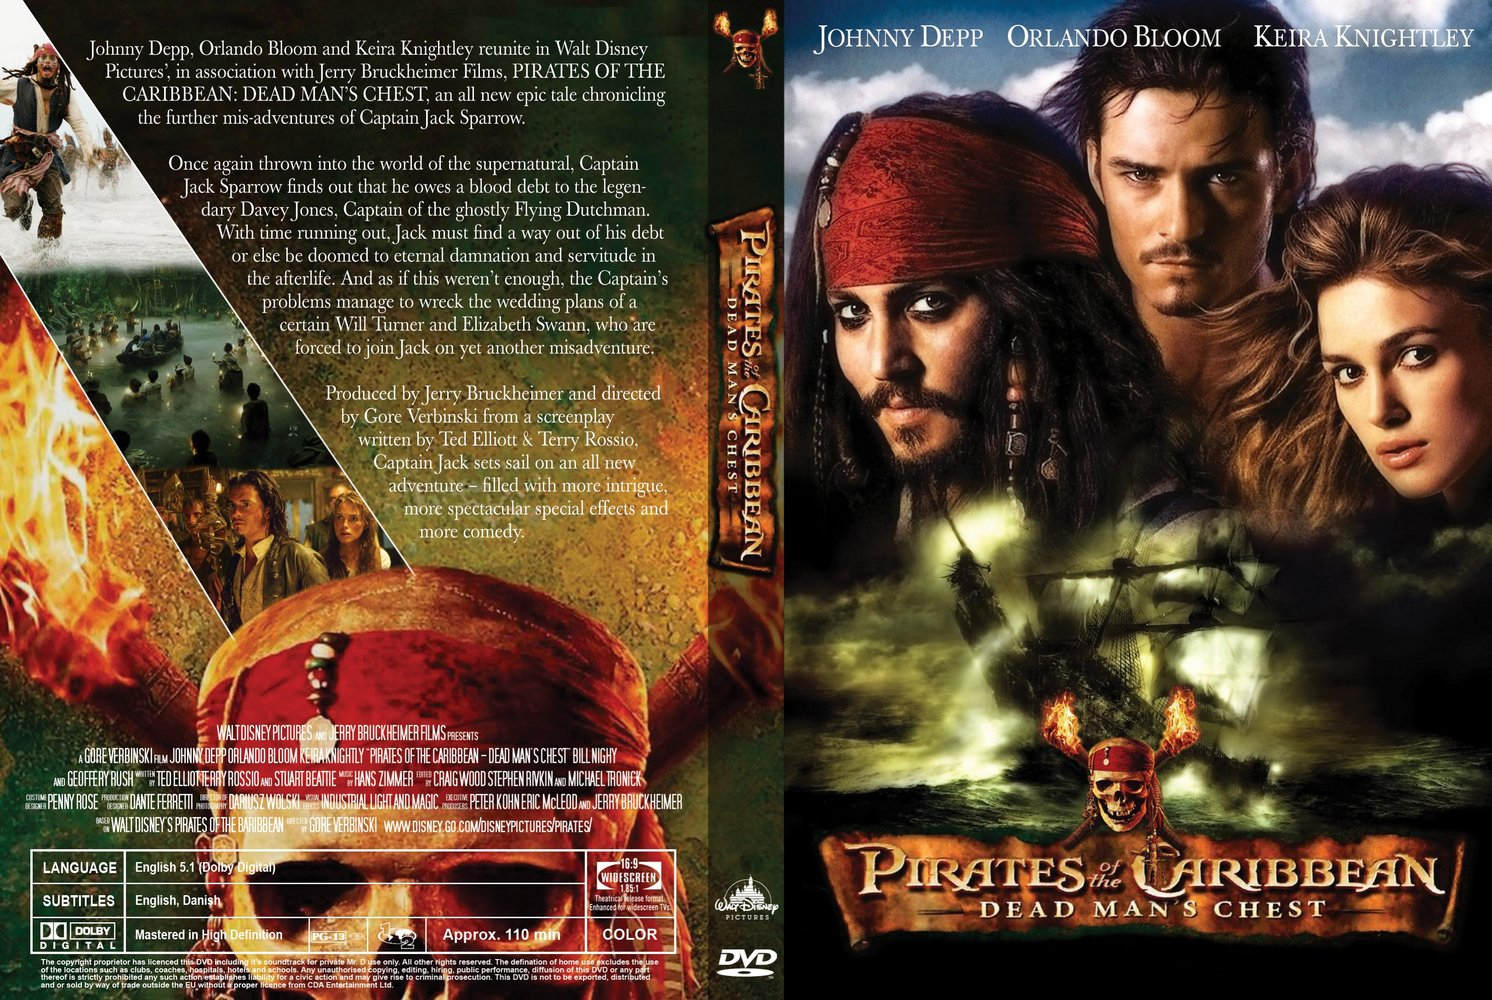 pirated dvd and music